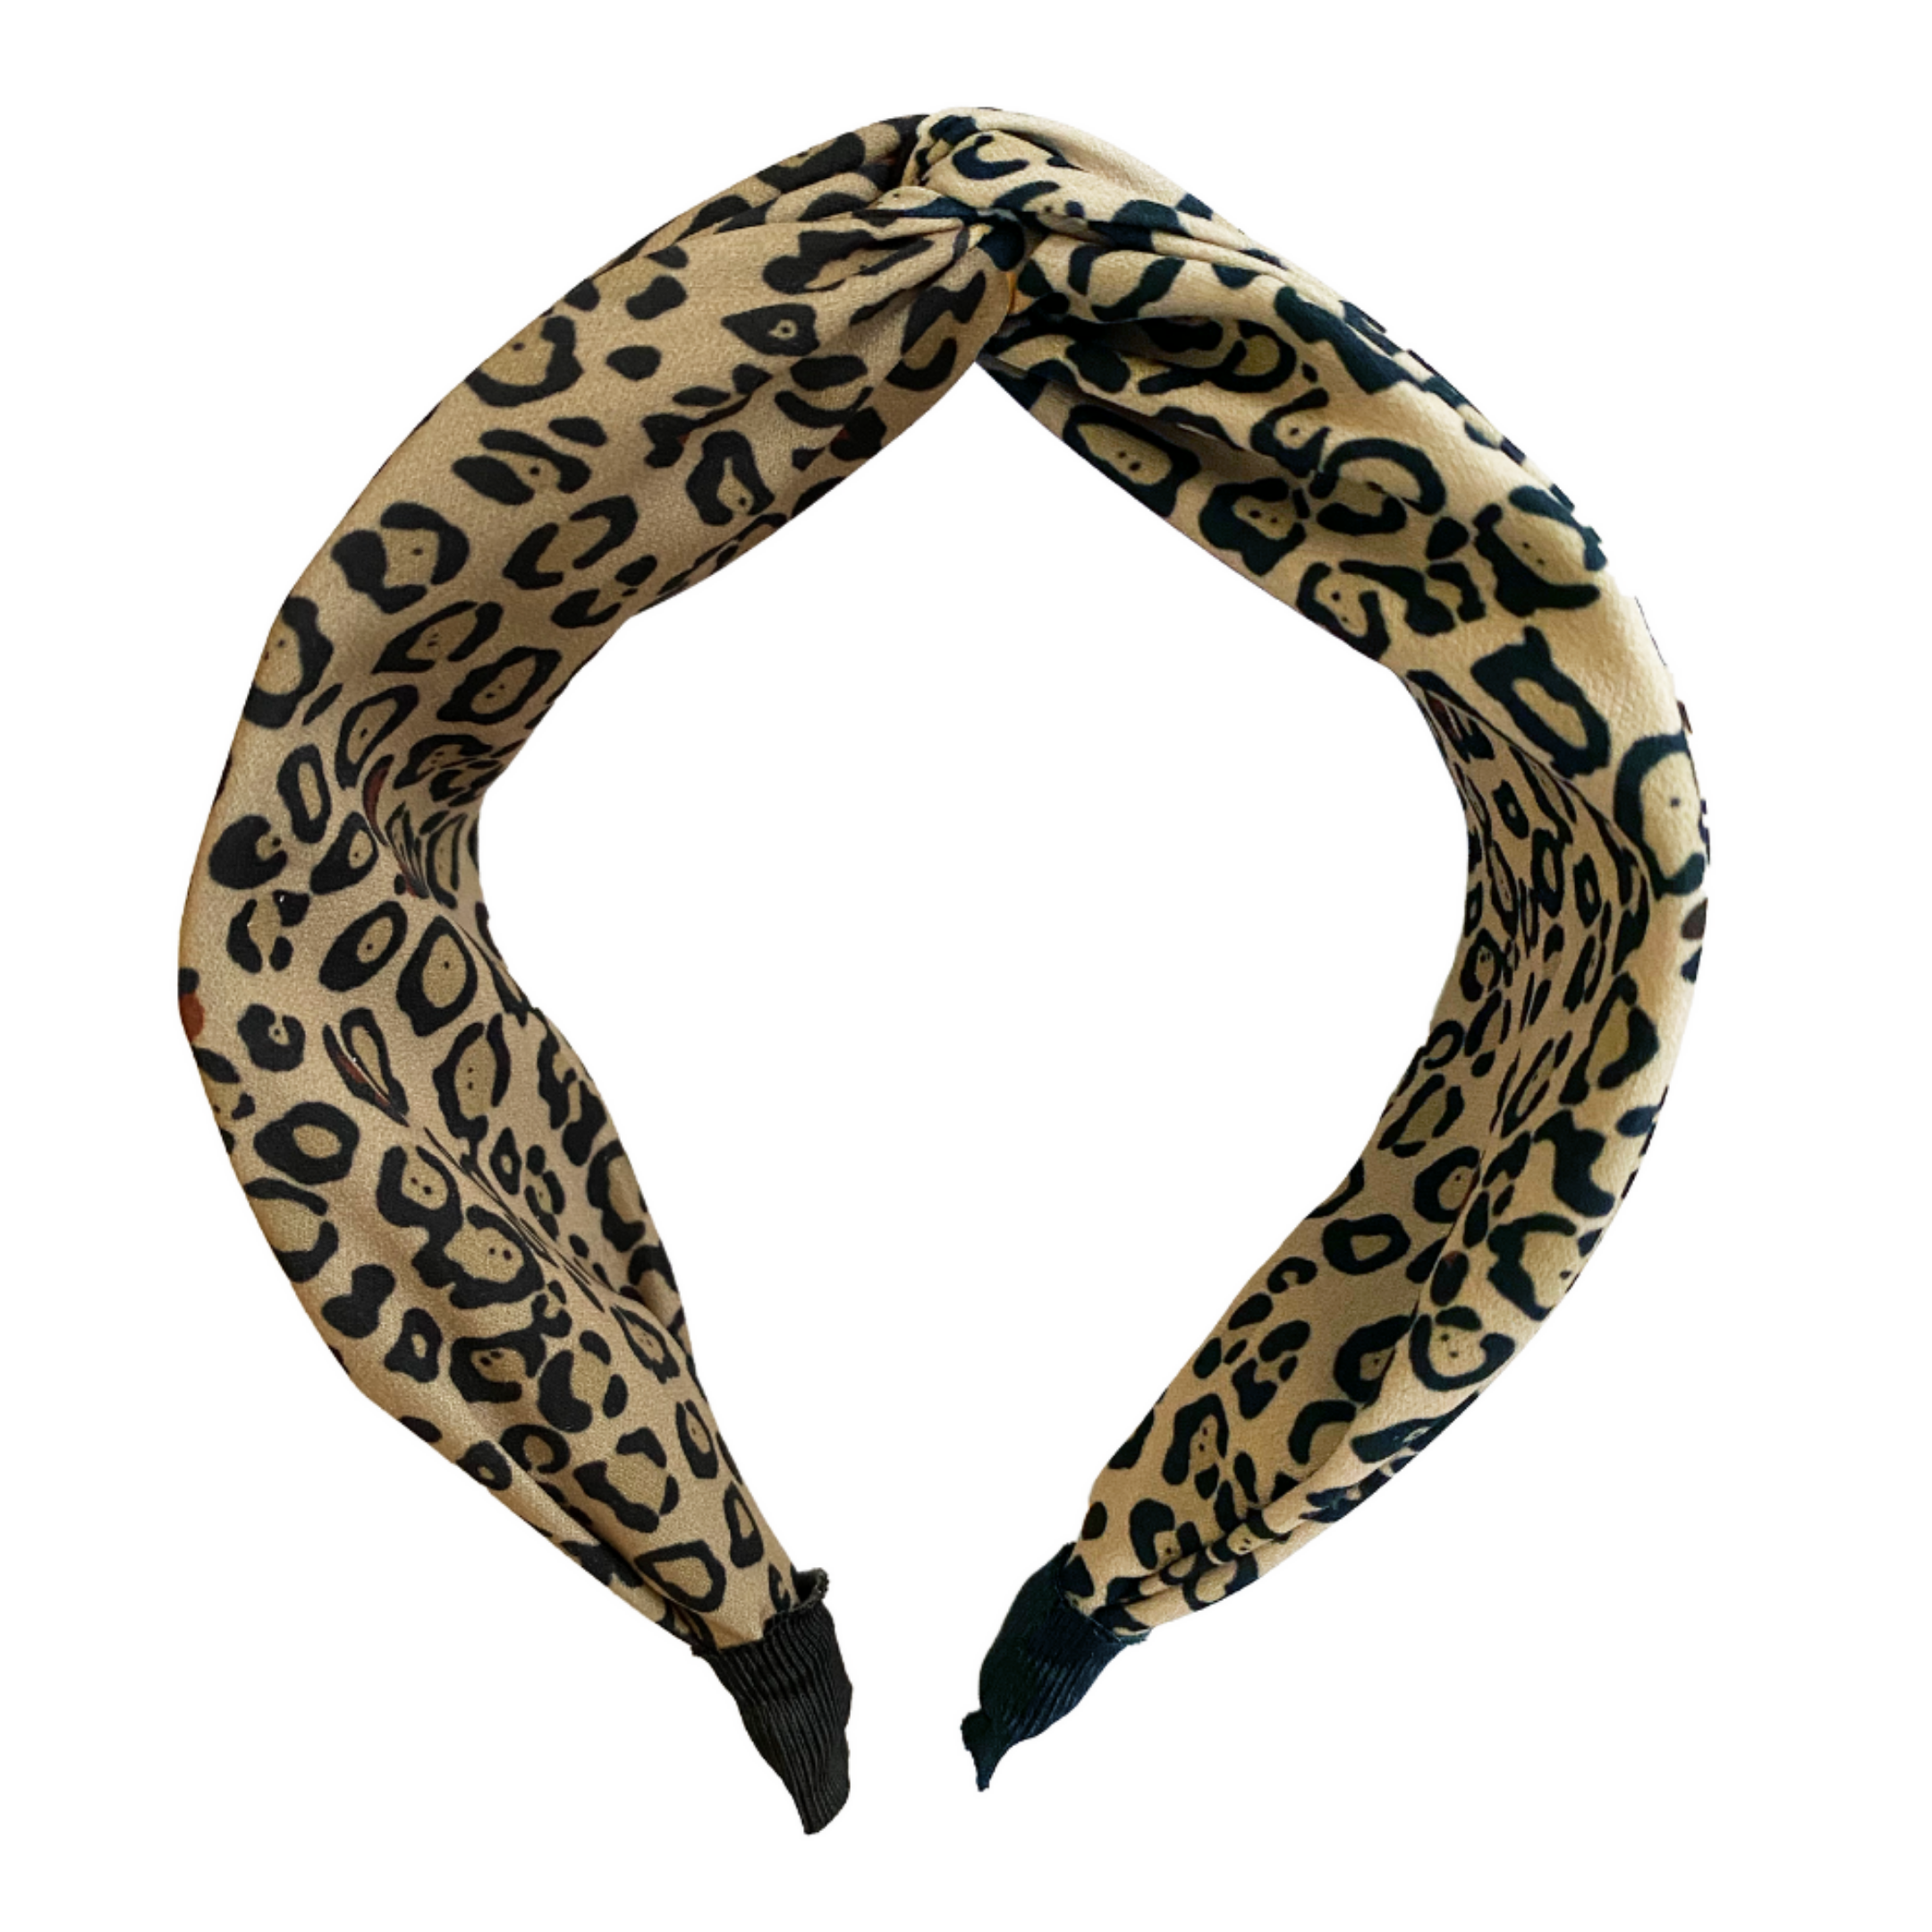 Leopard Wild Thing Headband